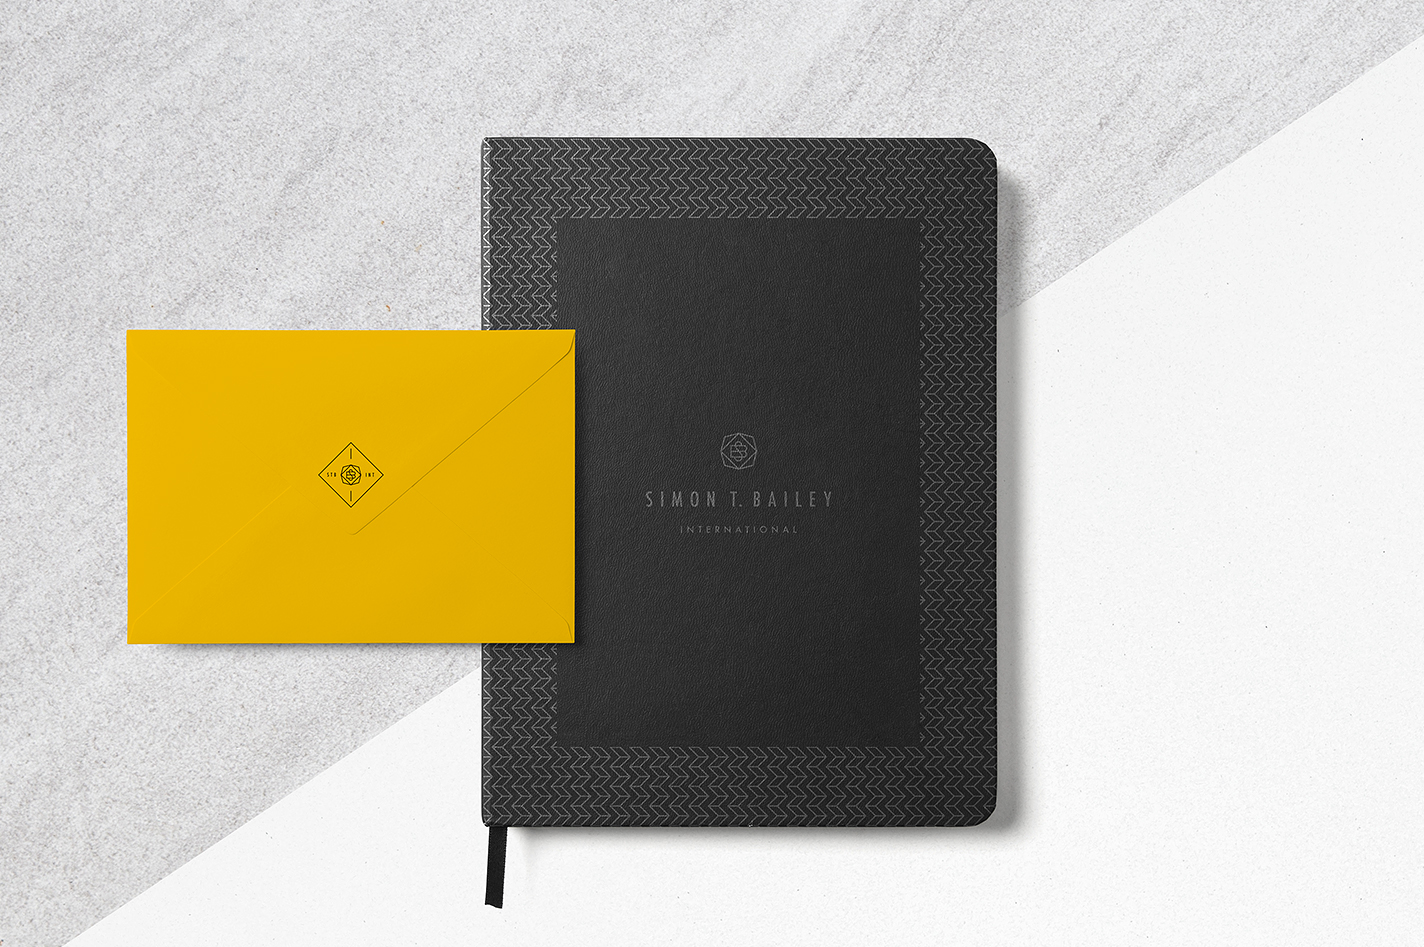 Black journal stationary with envelope on grey (from brand board)